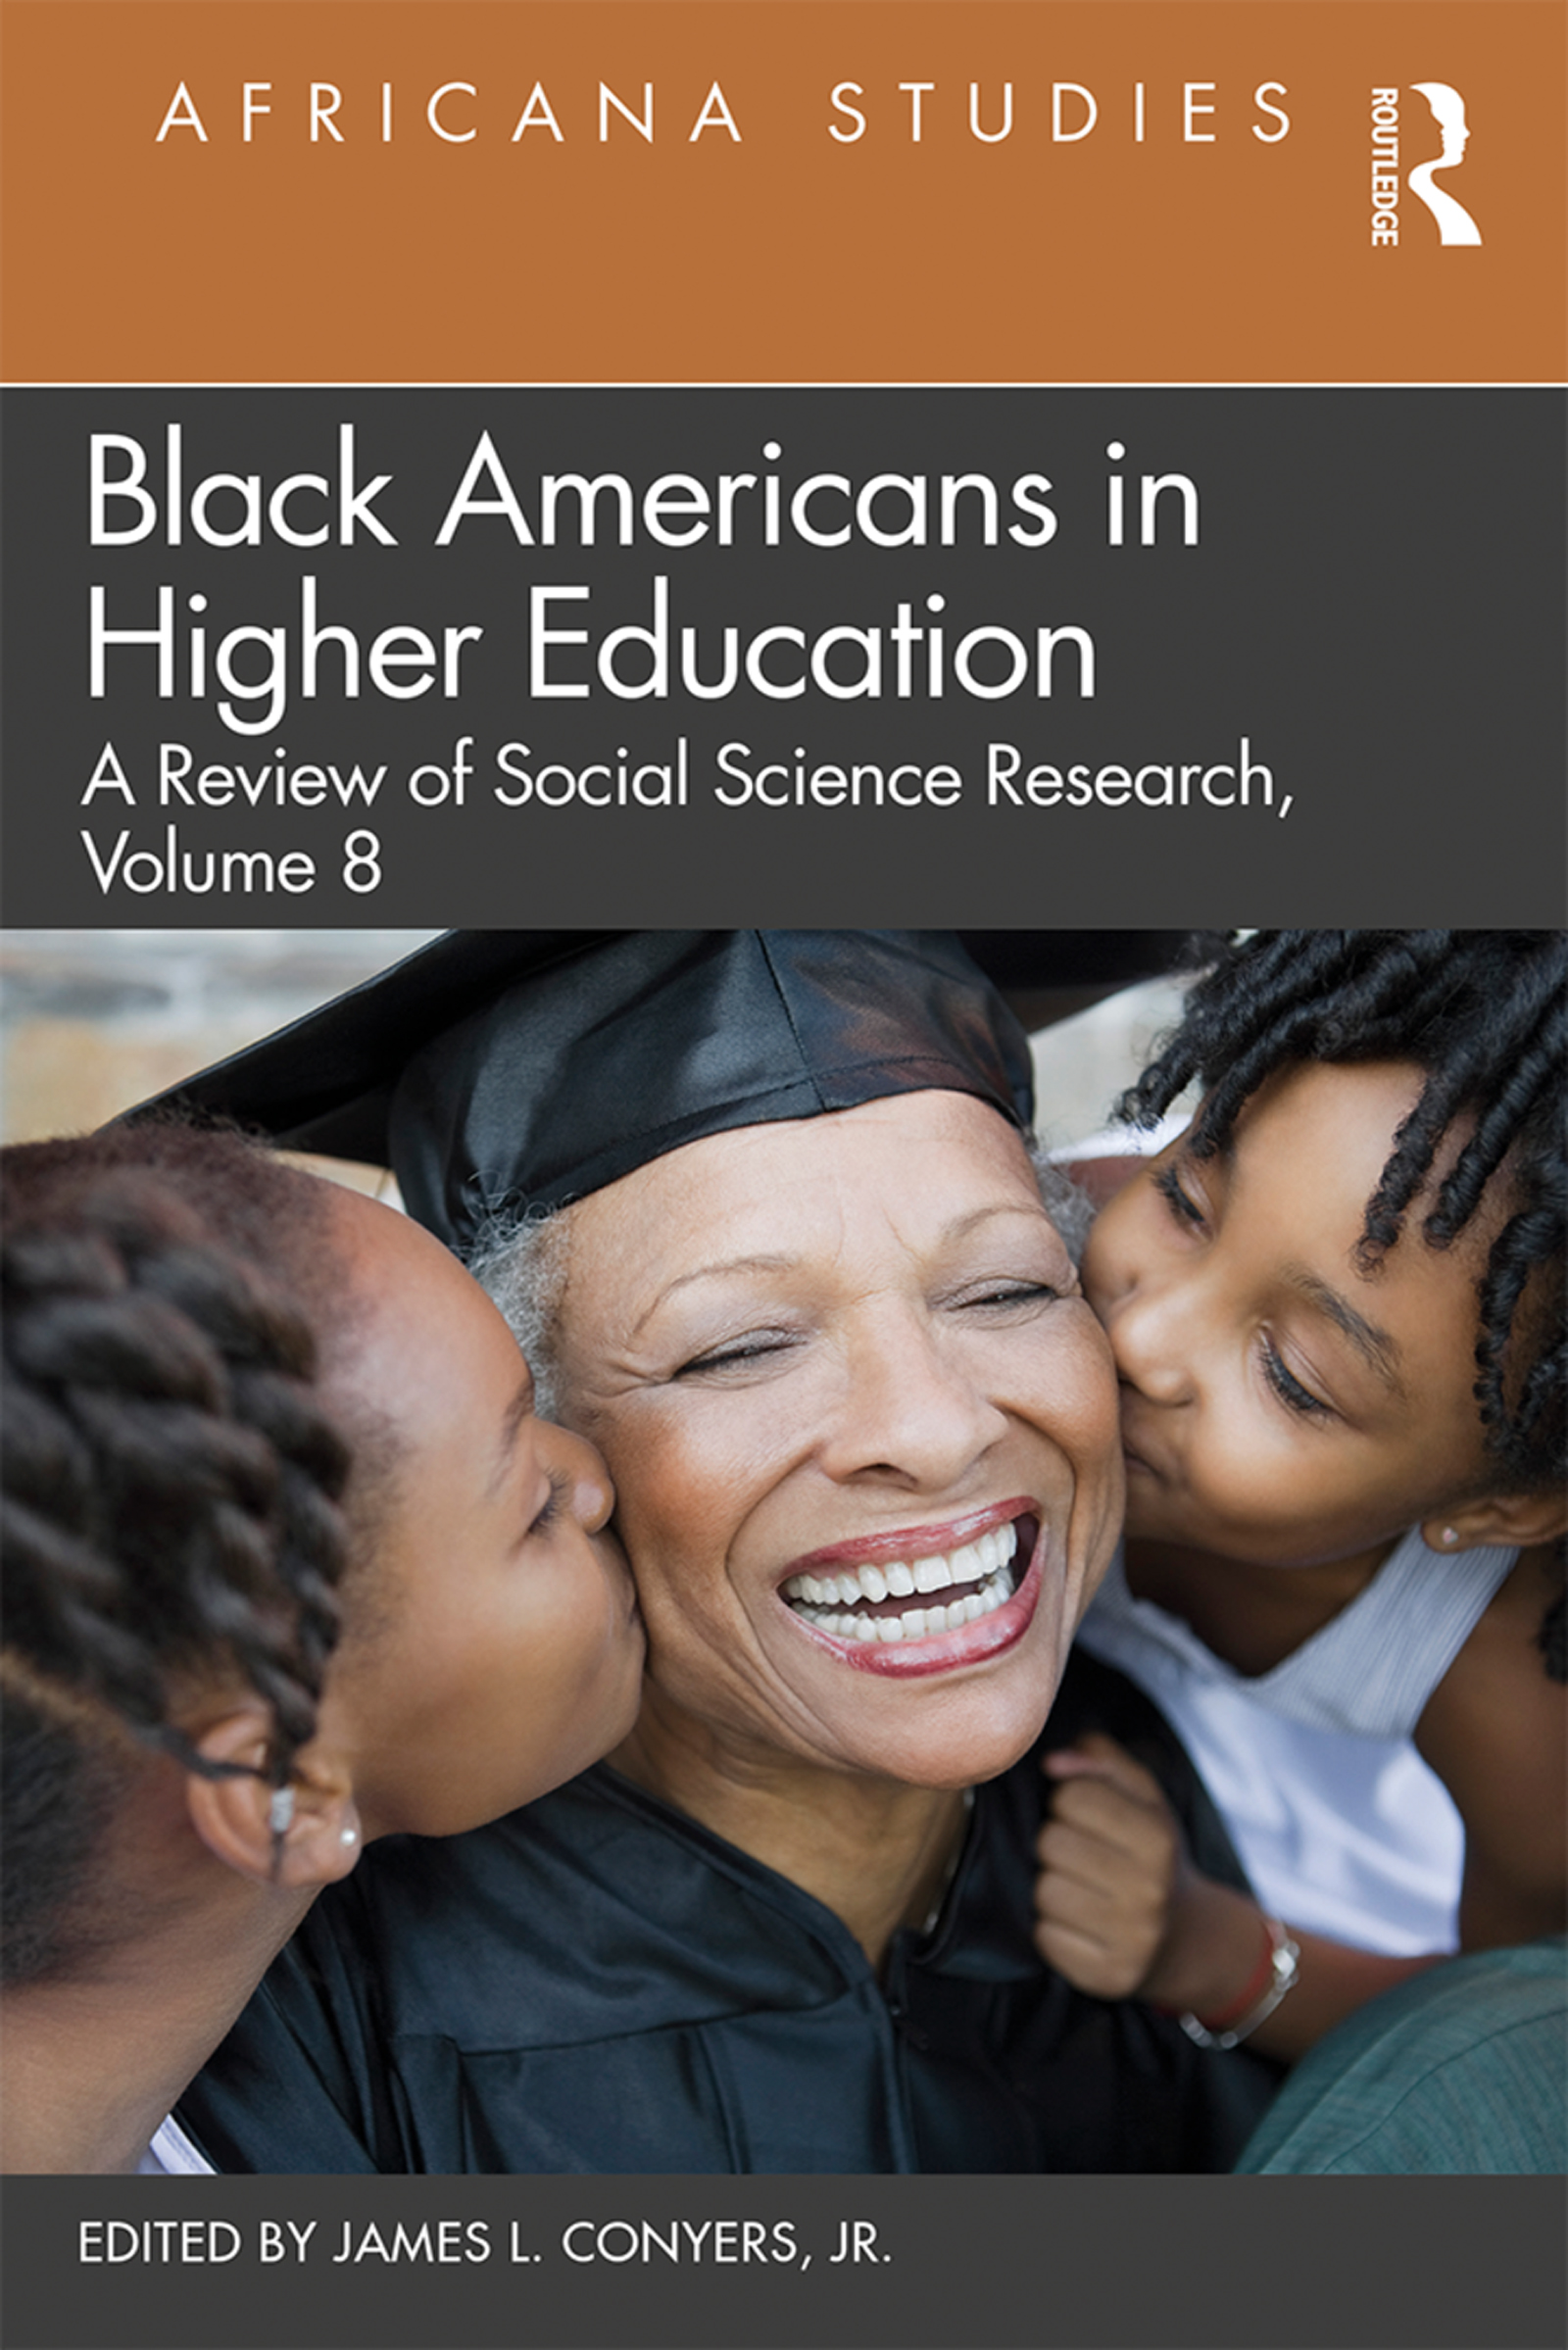 Black Americans in Higher Education: Africana Studies: A Review of Social Science Research, Volume 8 book cover